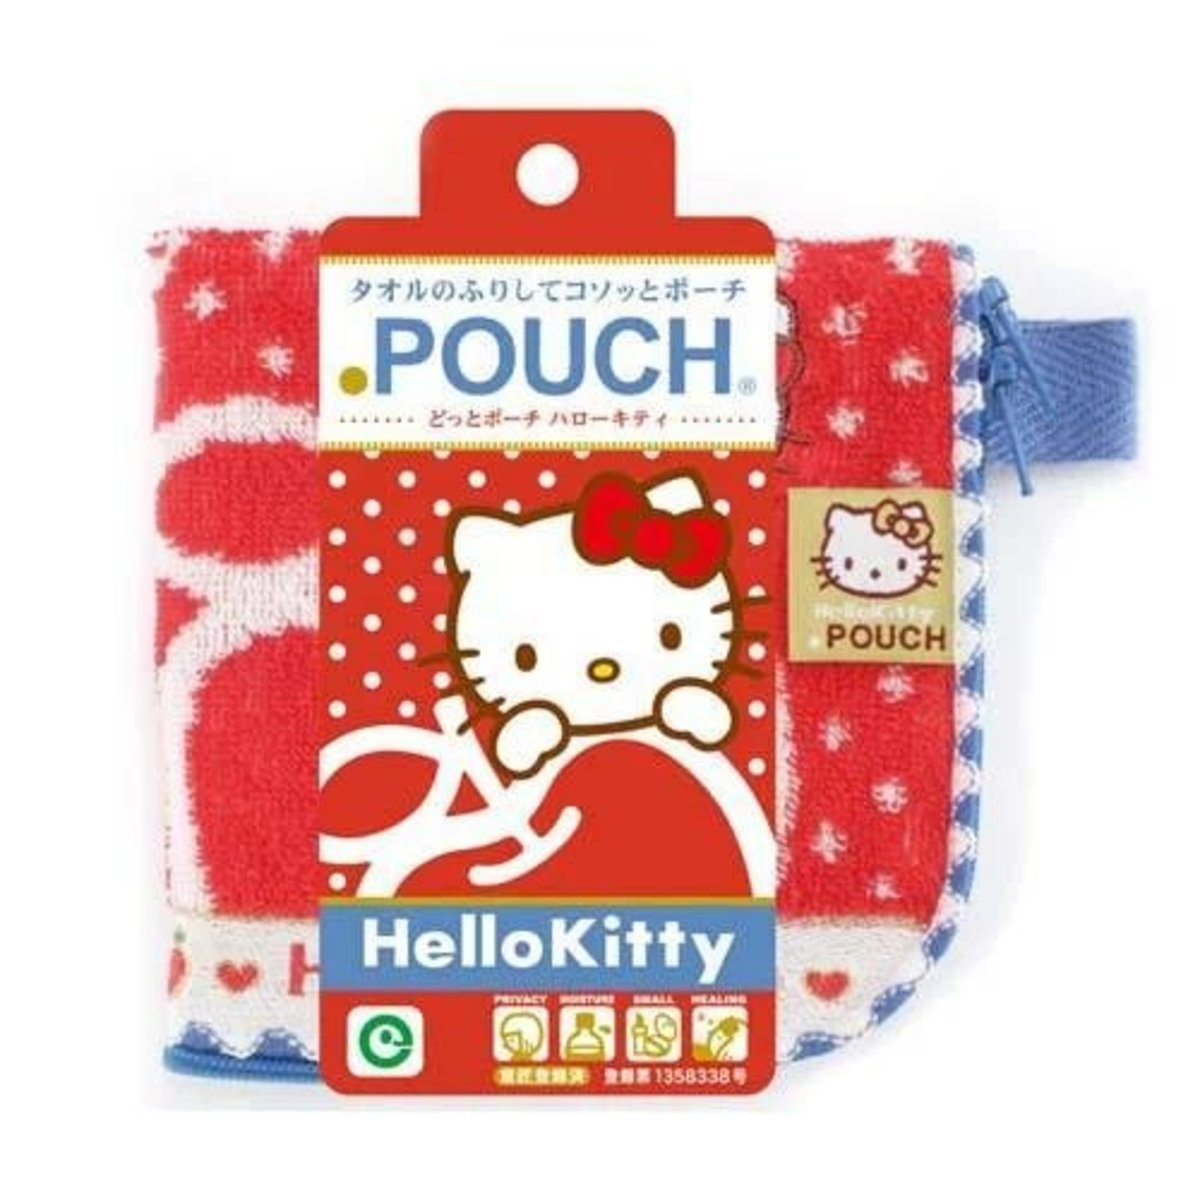 (Red Hello Kitty Apple) Japan Multi-function Towel Pouch for Umbrella/Water Bottle